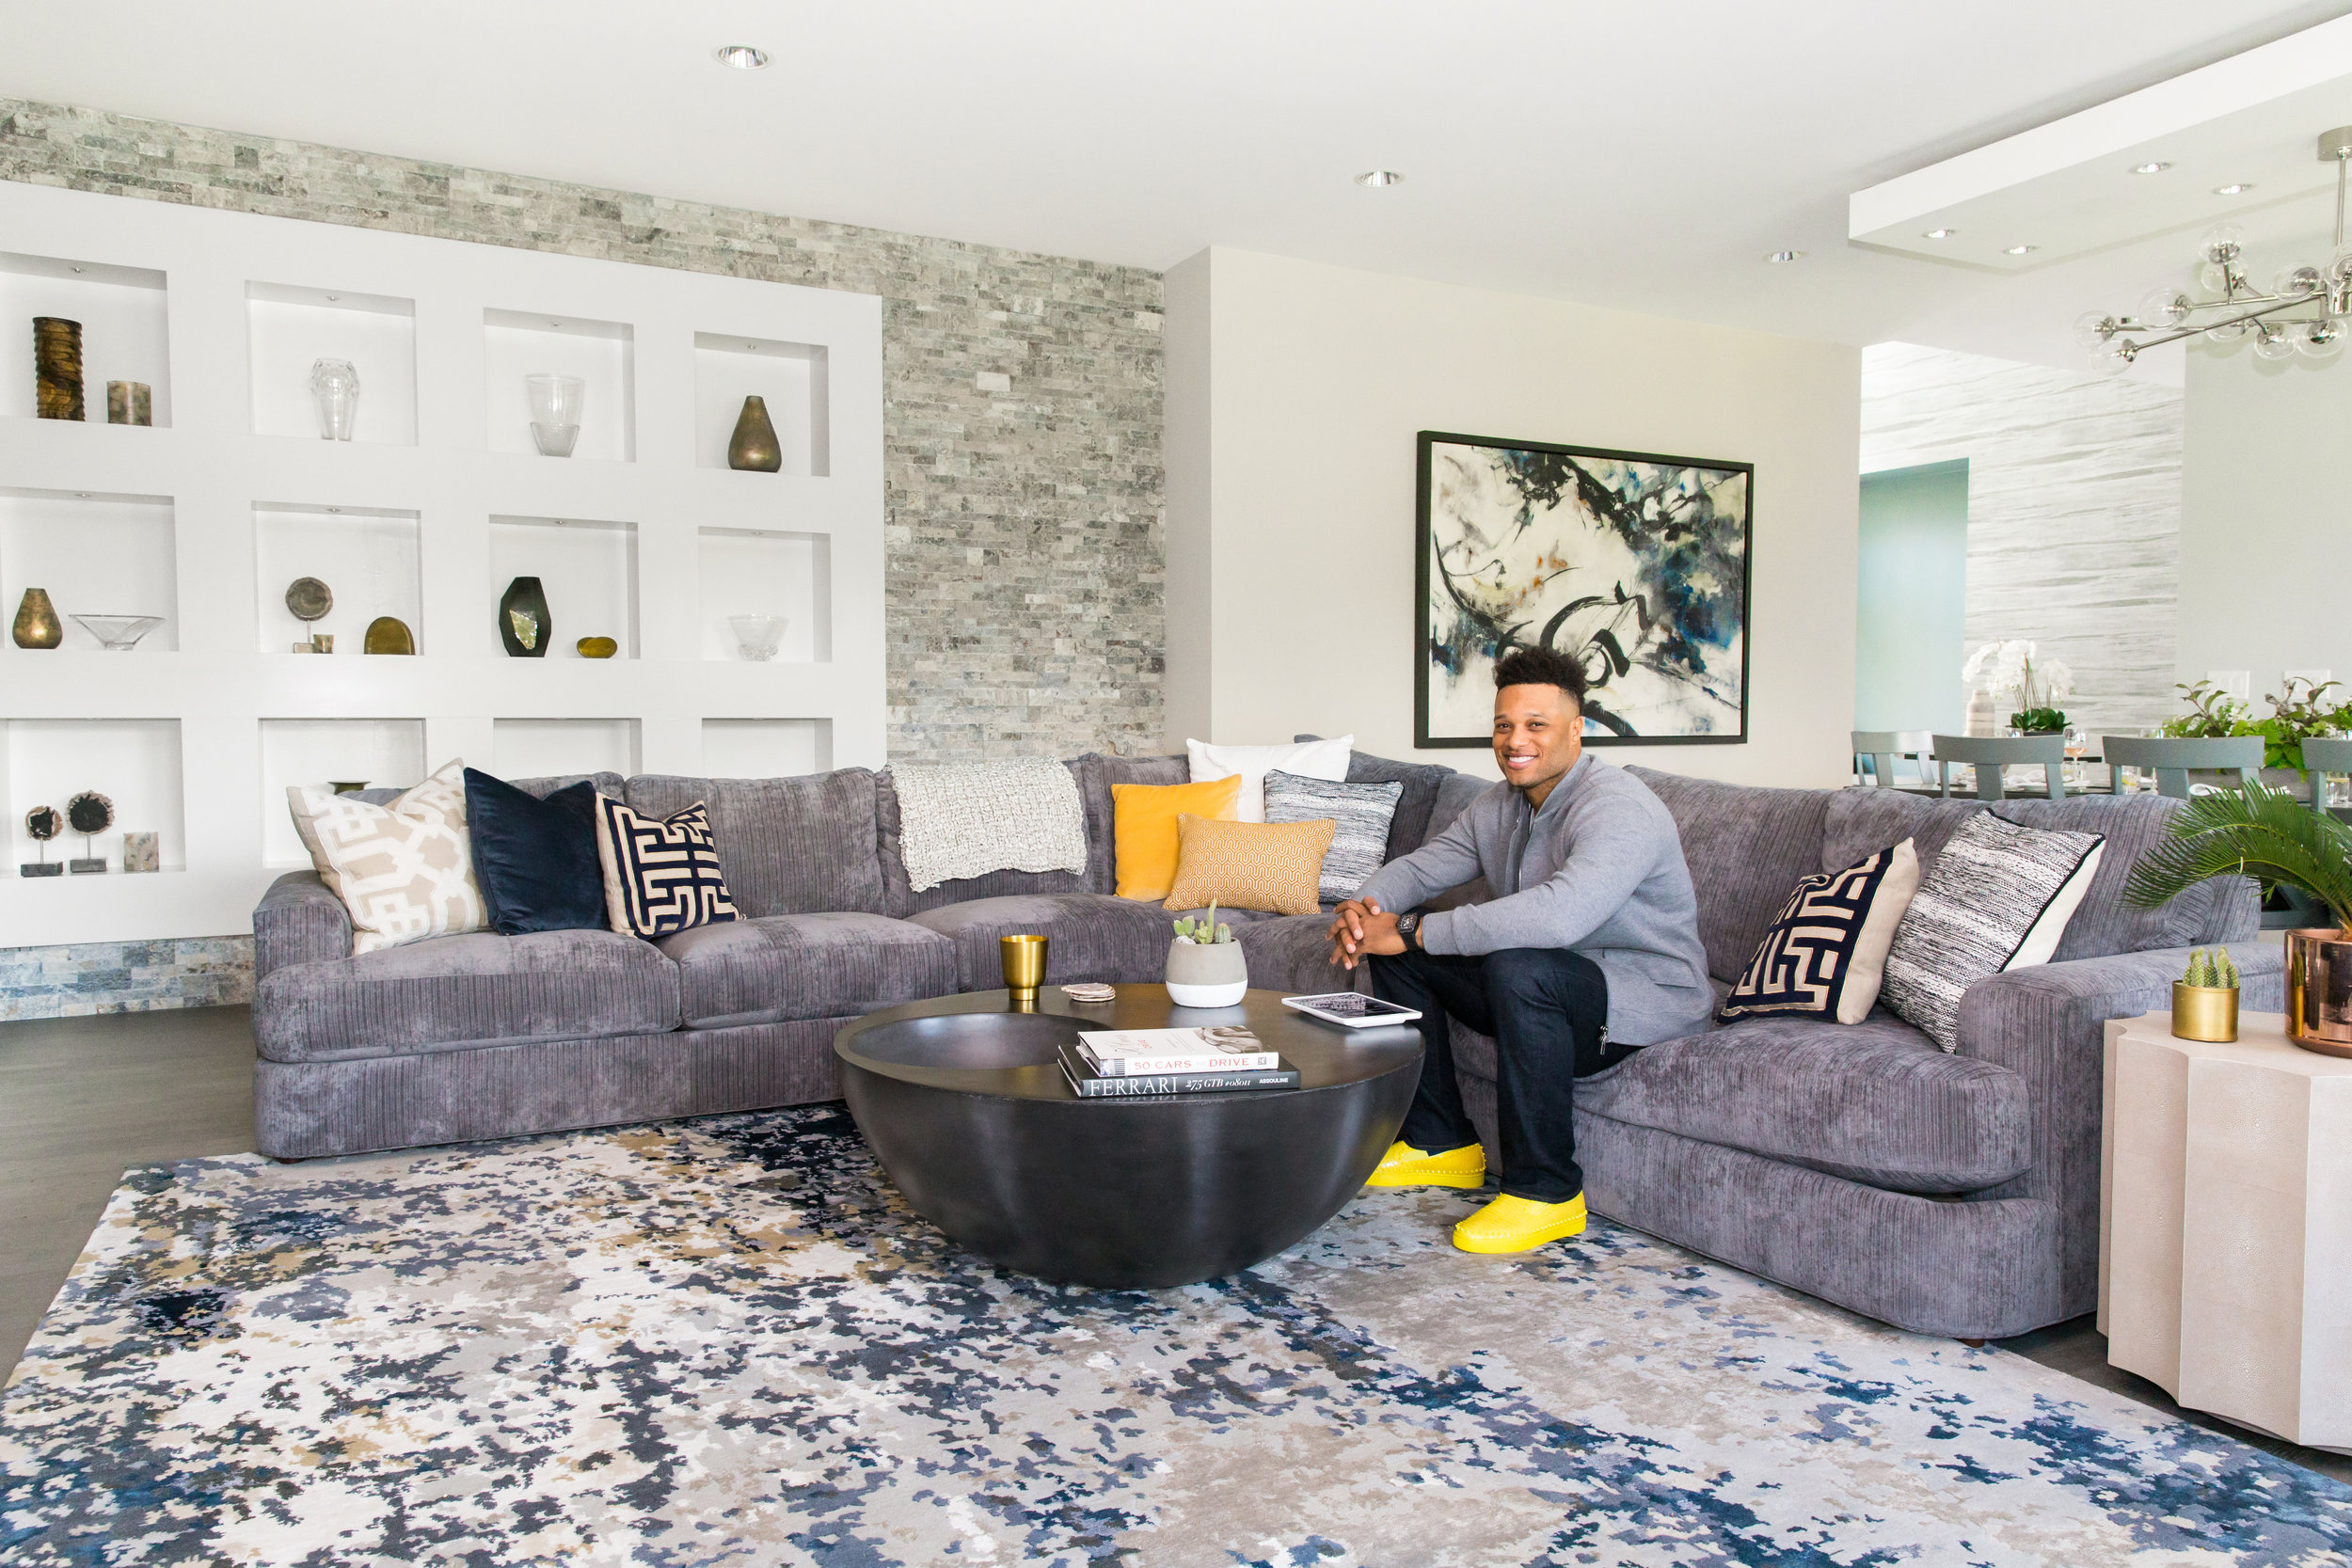 Client Robinson Cano - Project Manager, Co-Designer, and on site Stylist